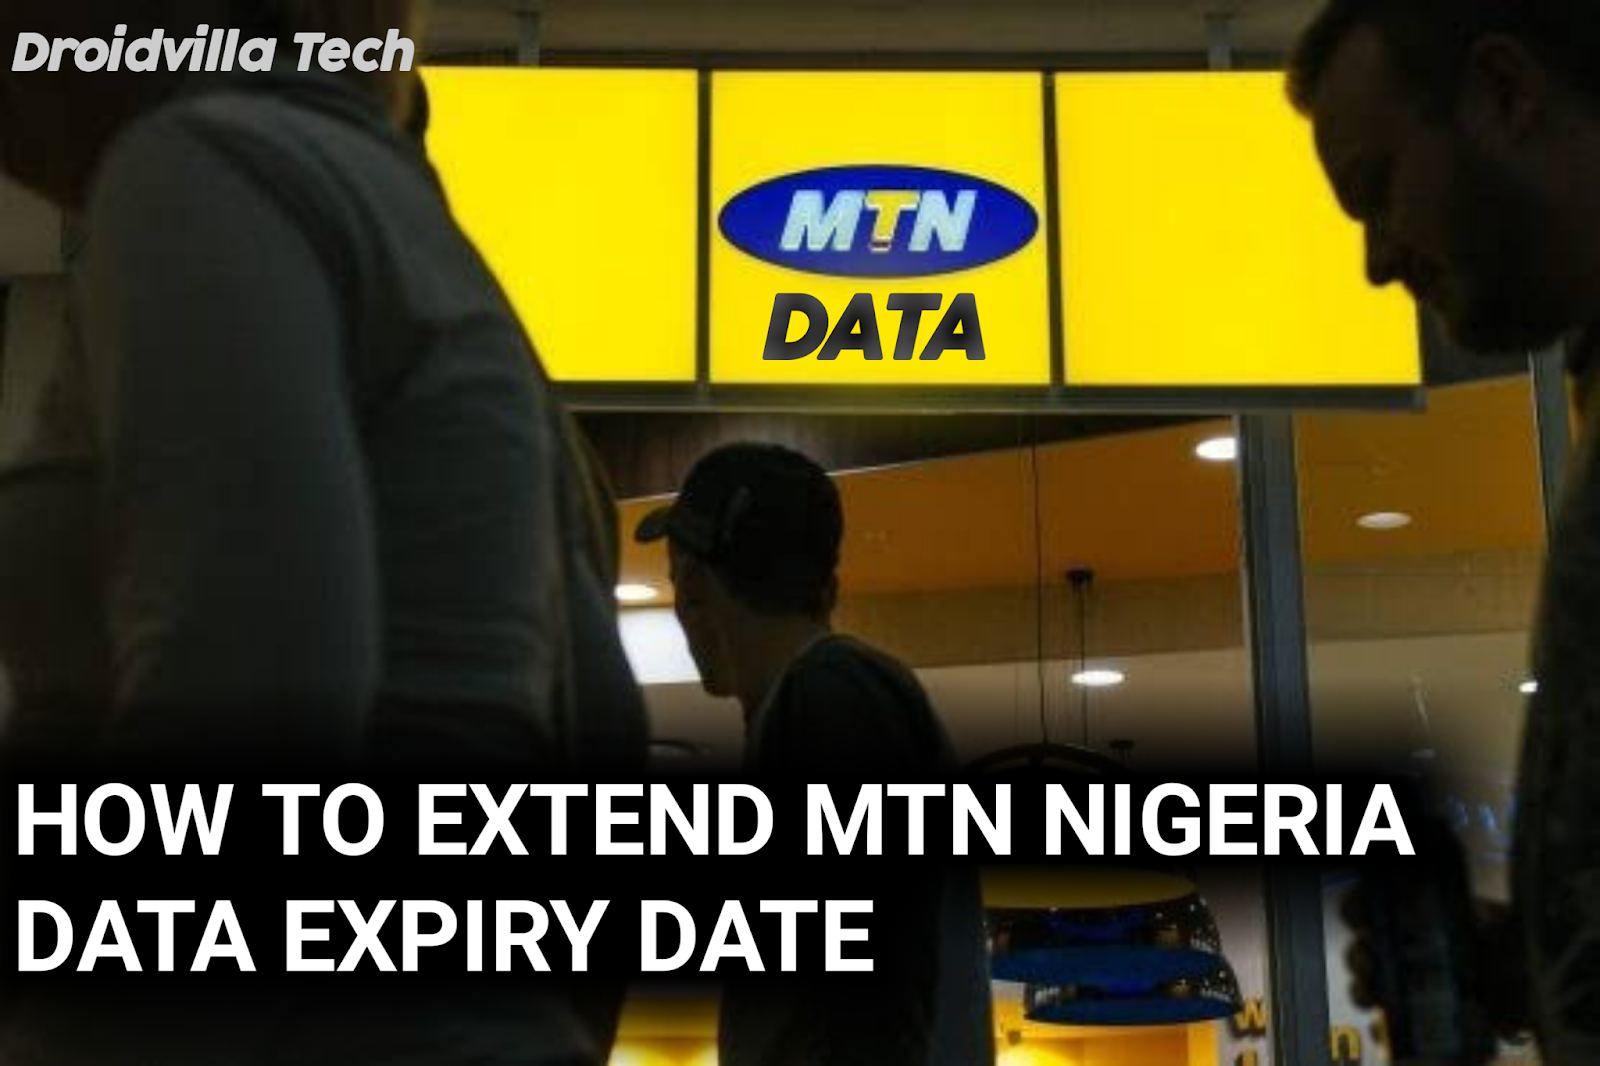 Extend MTN Data expiry date